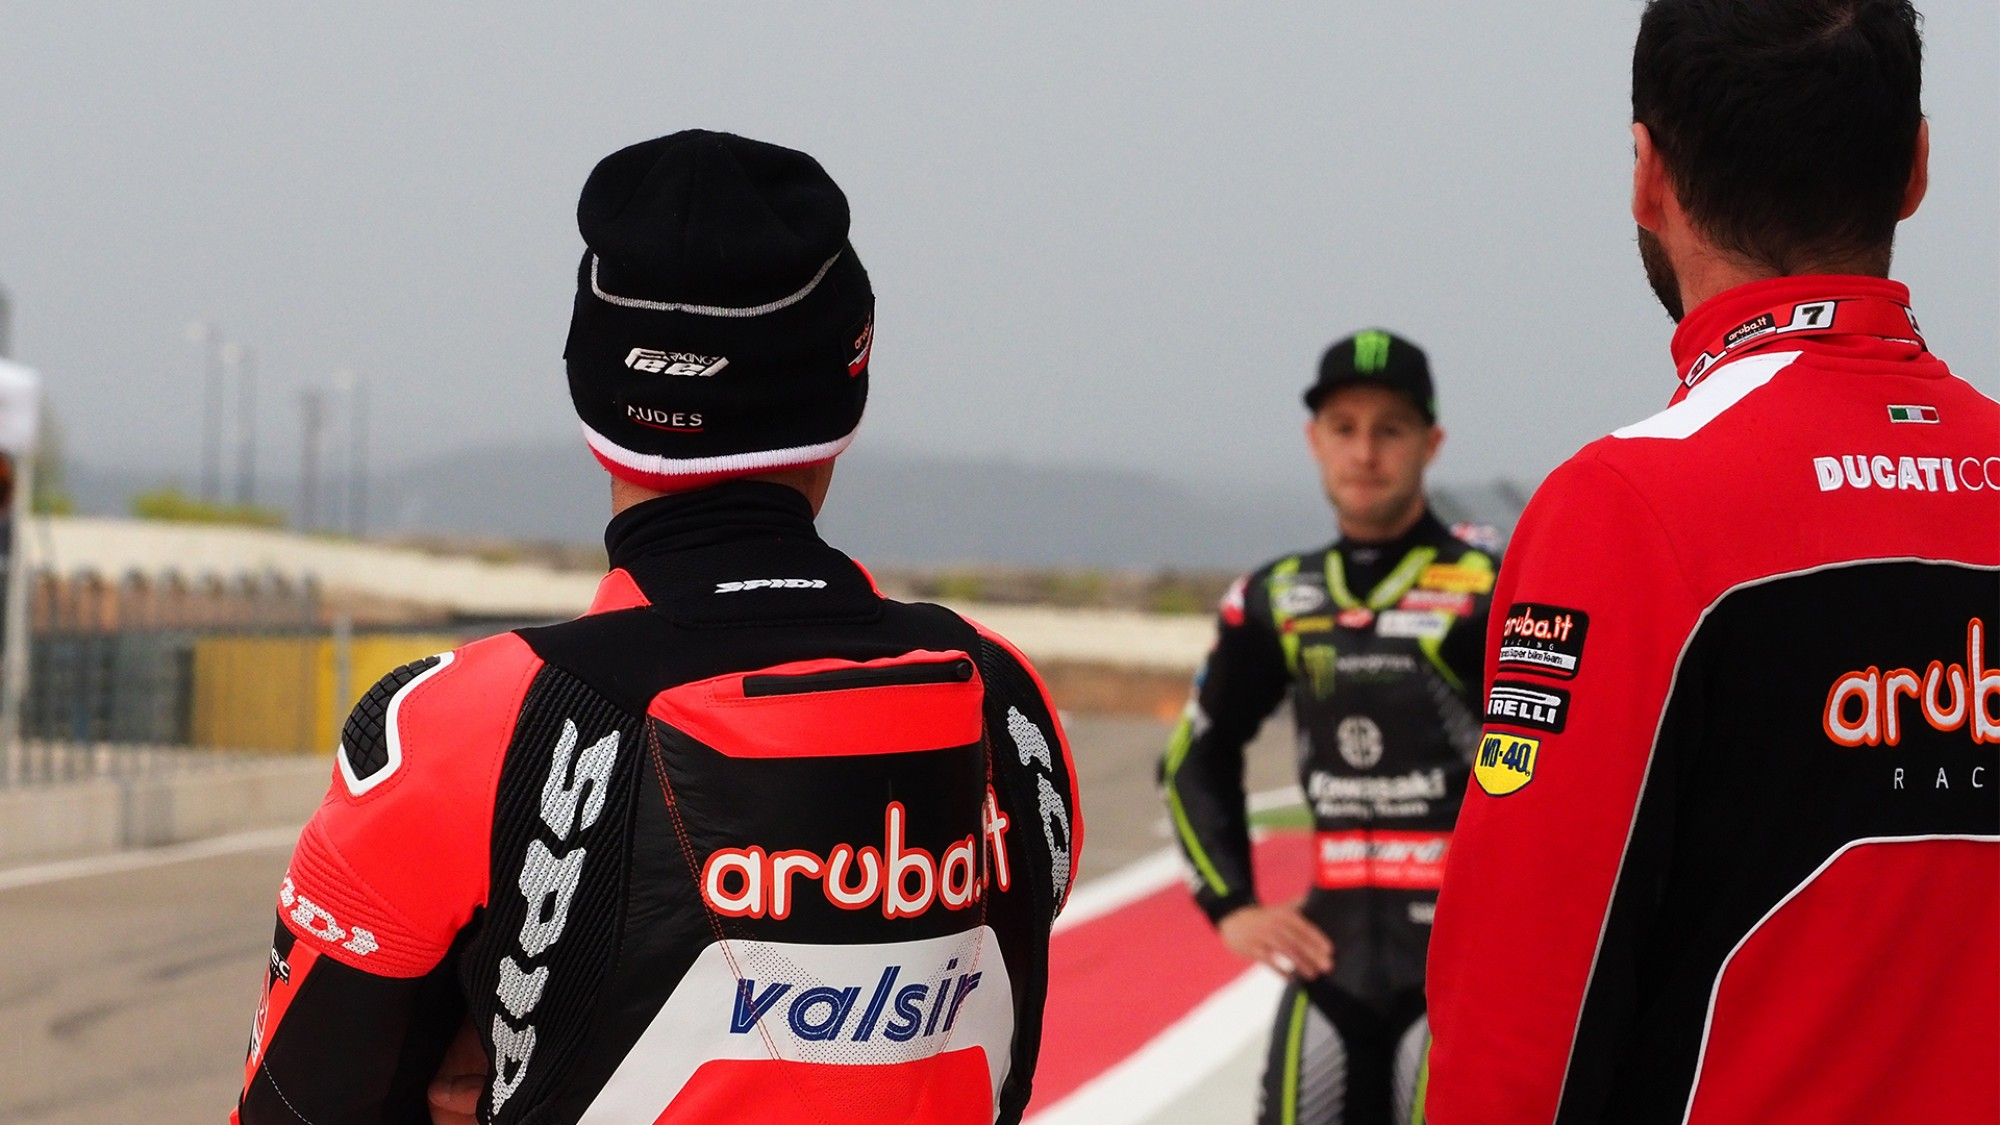 SBK – Can Jonathan Rea be moving to Ducati?